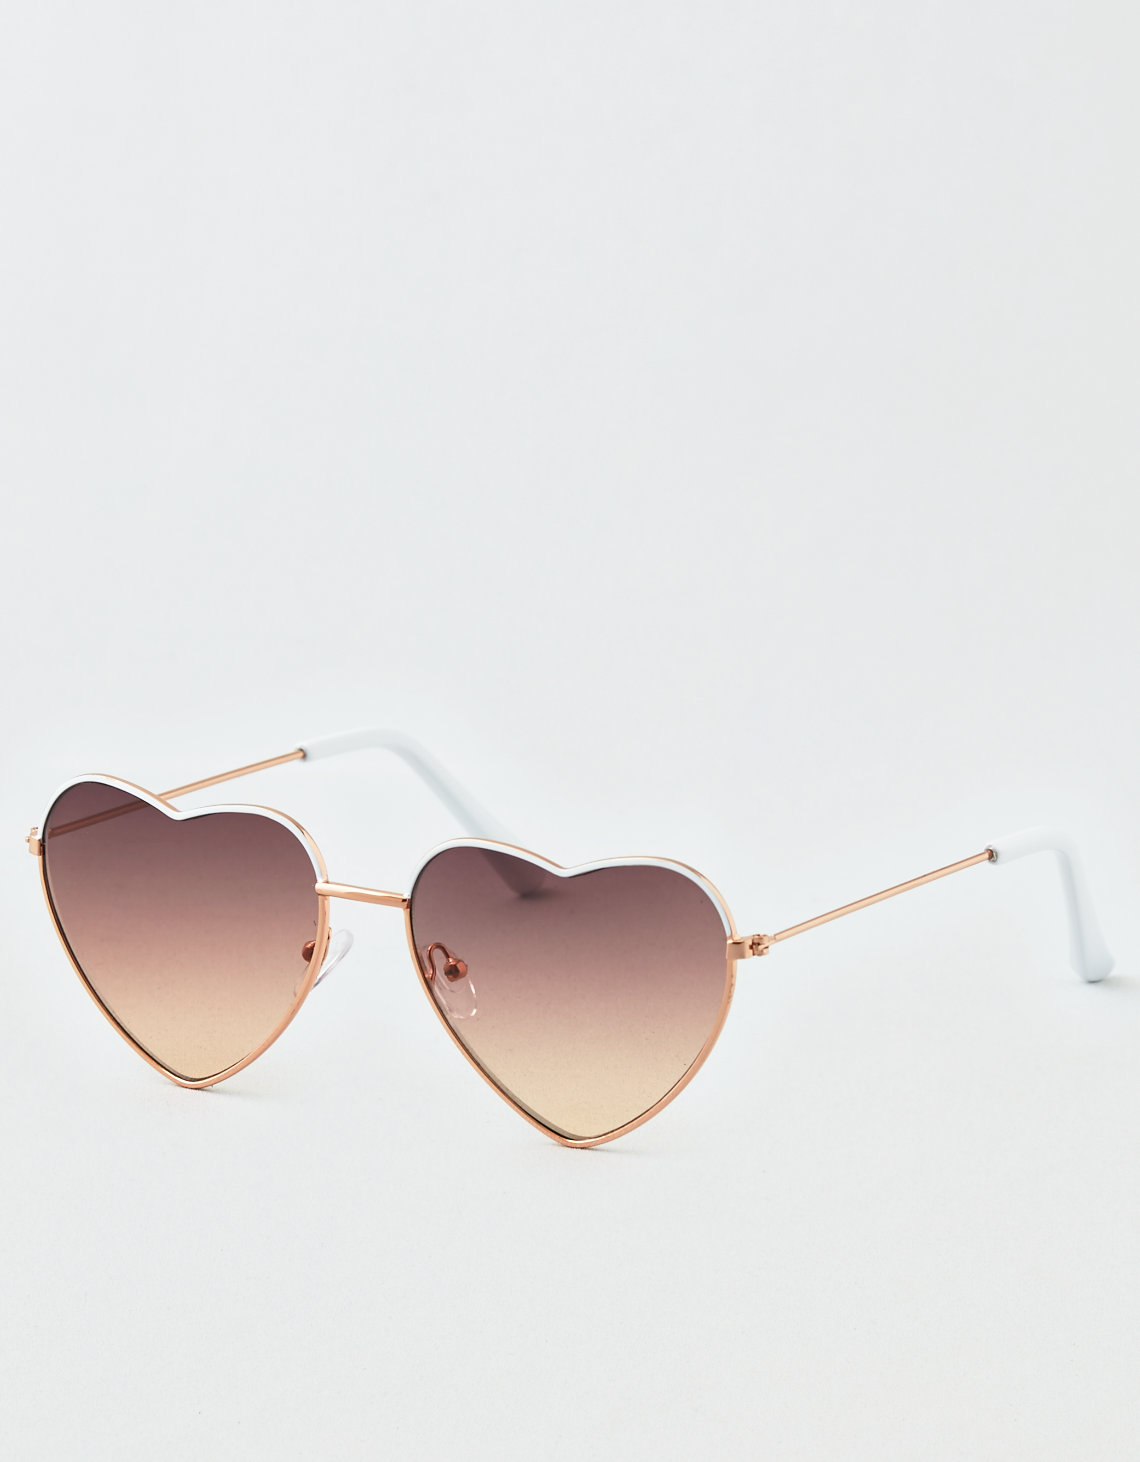 104be61a81 American Eagle Heart Aviator Sunglasses « One More Soul